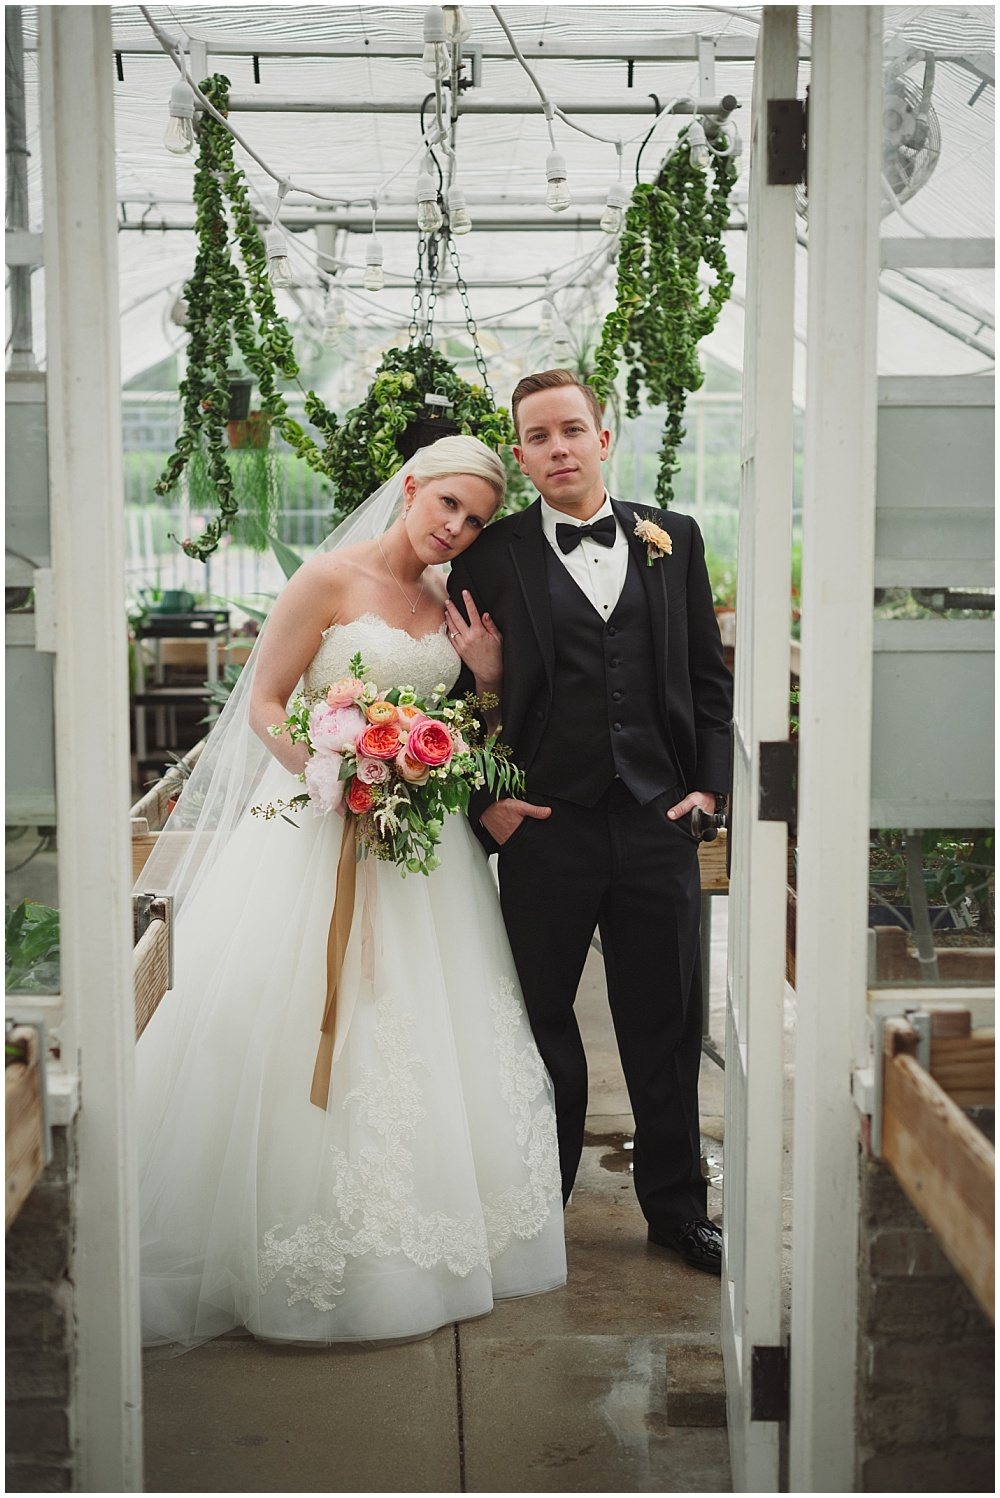 Bride and Groom greenhouse portraits   Ritz Charles Garden Pavilion Wedding by Stacy Able Photography & Jessica Dum Wedding Coordination